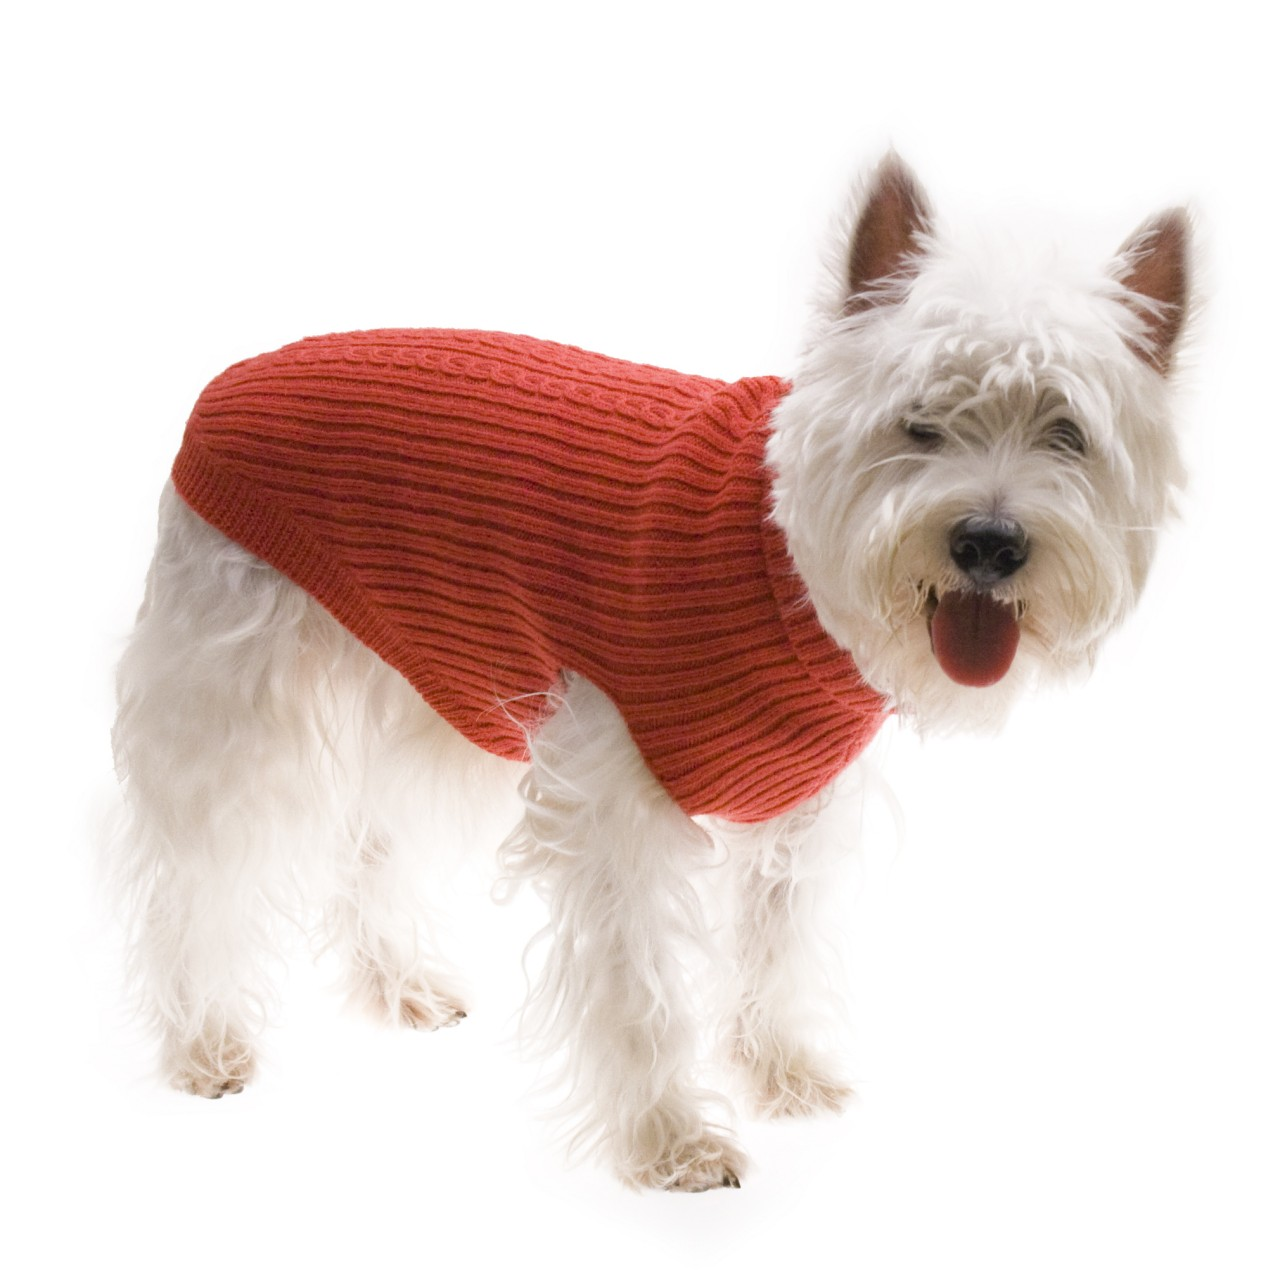 Dog Jumper photo - 1